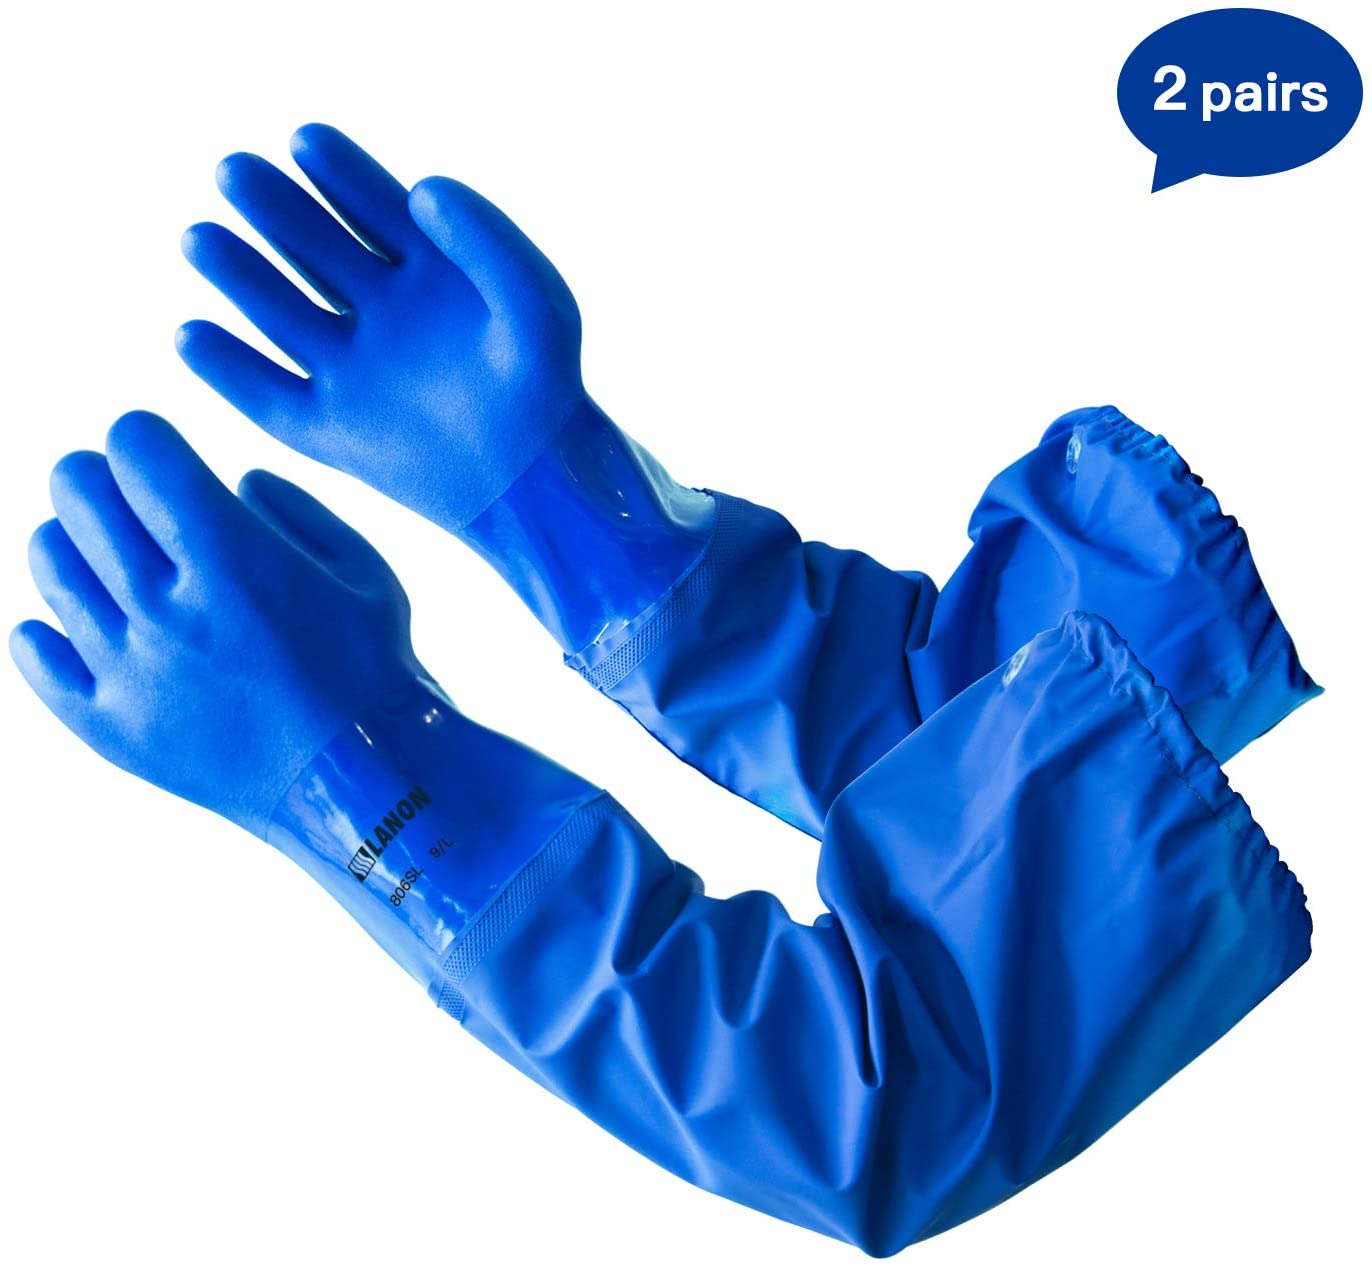 LANON PVC Coated Chemical Resistant Gloves, 2 Pairs 26 Inch Reusable Heavy Duty Safety Work Gloves, Elbow Length, Non-Slip, Large